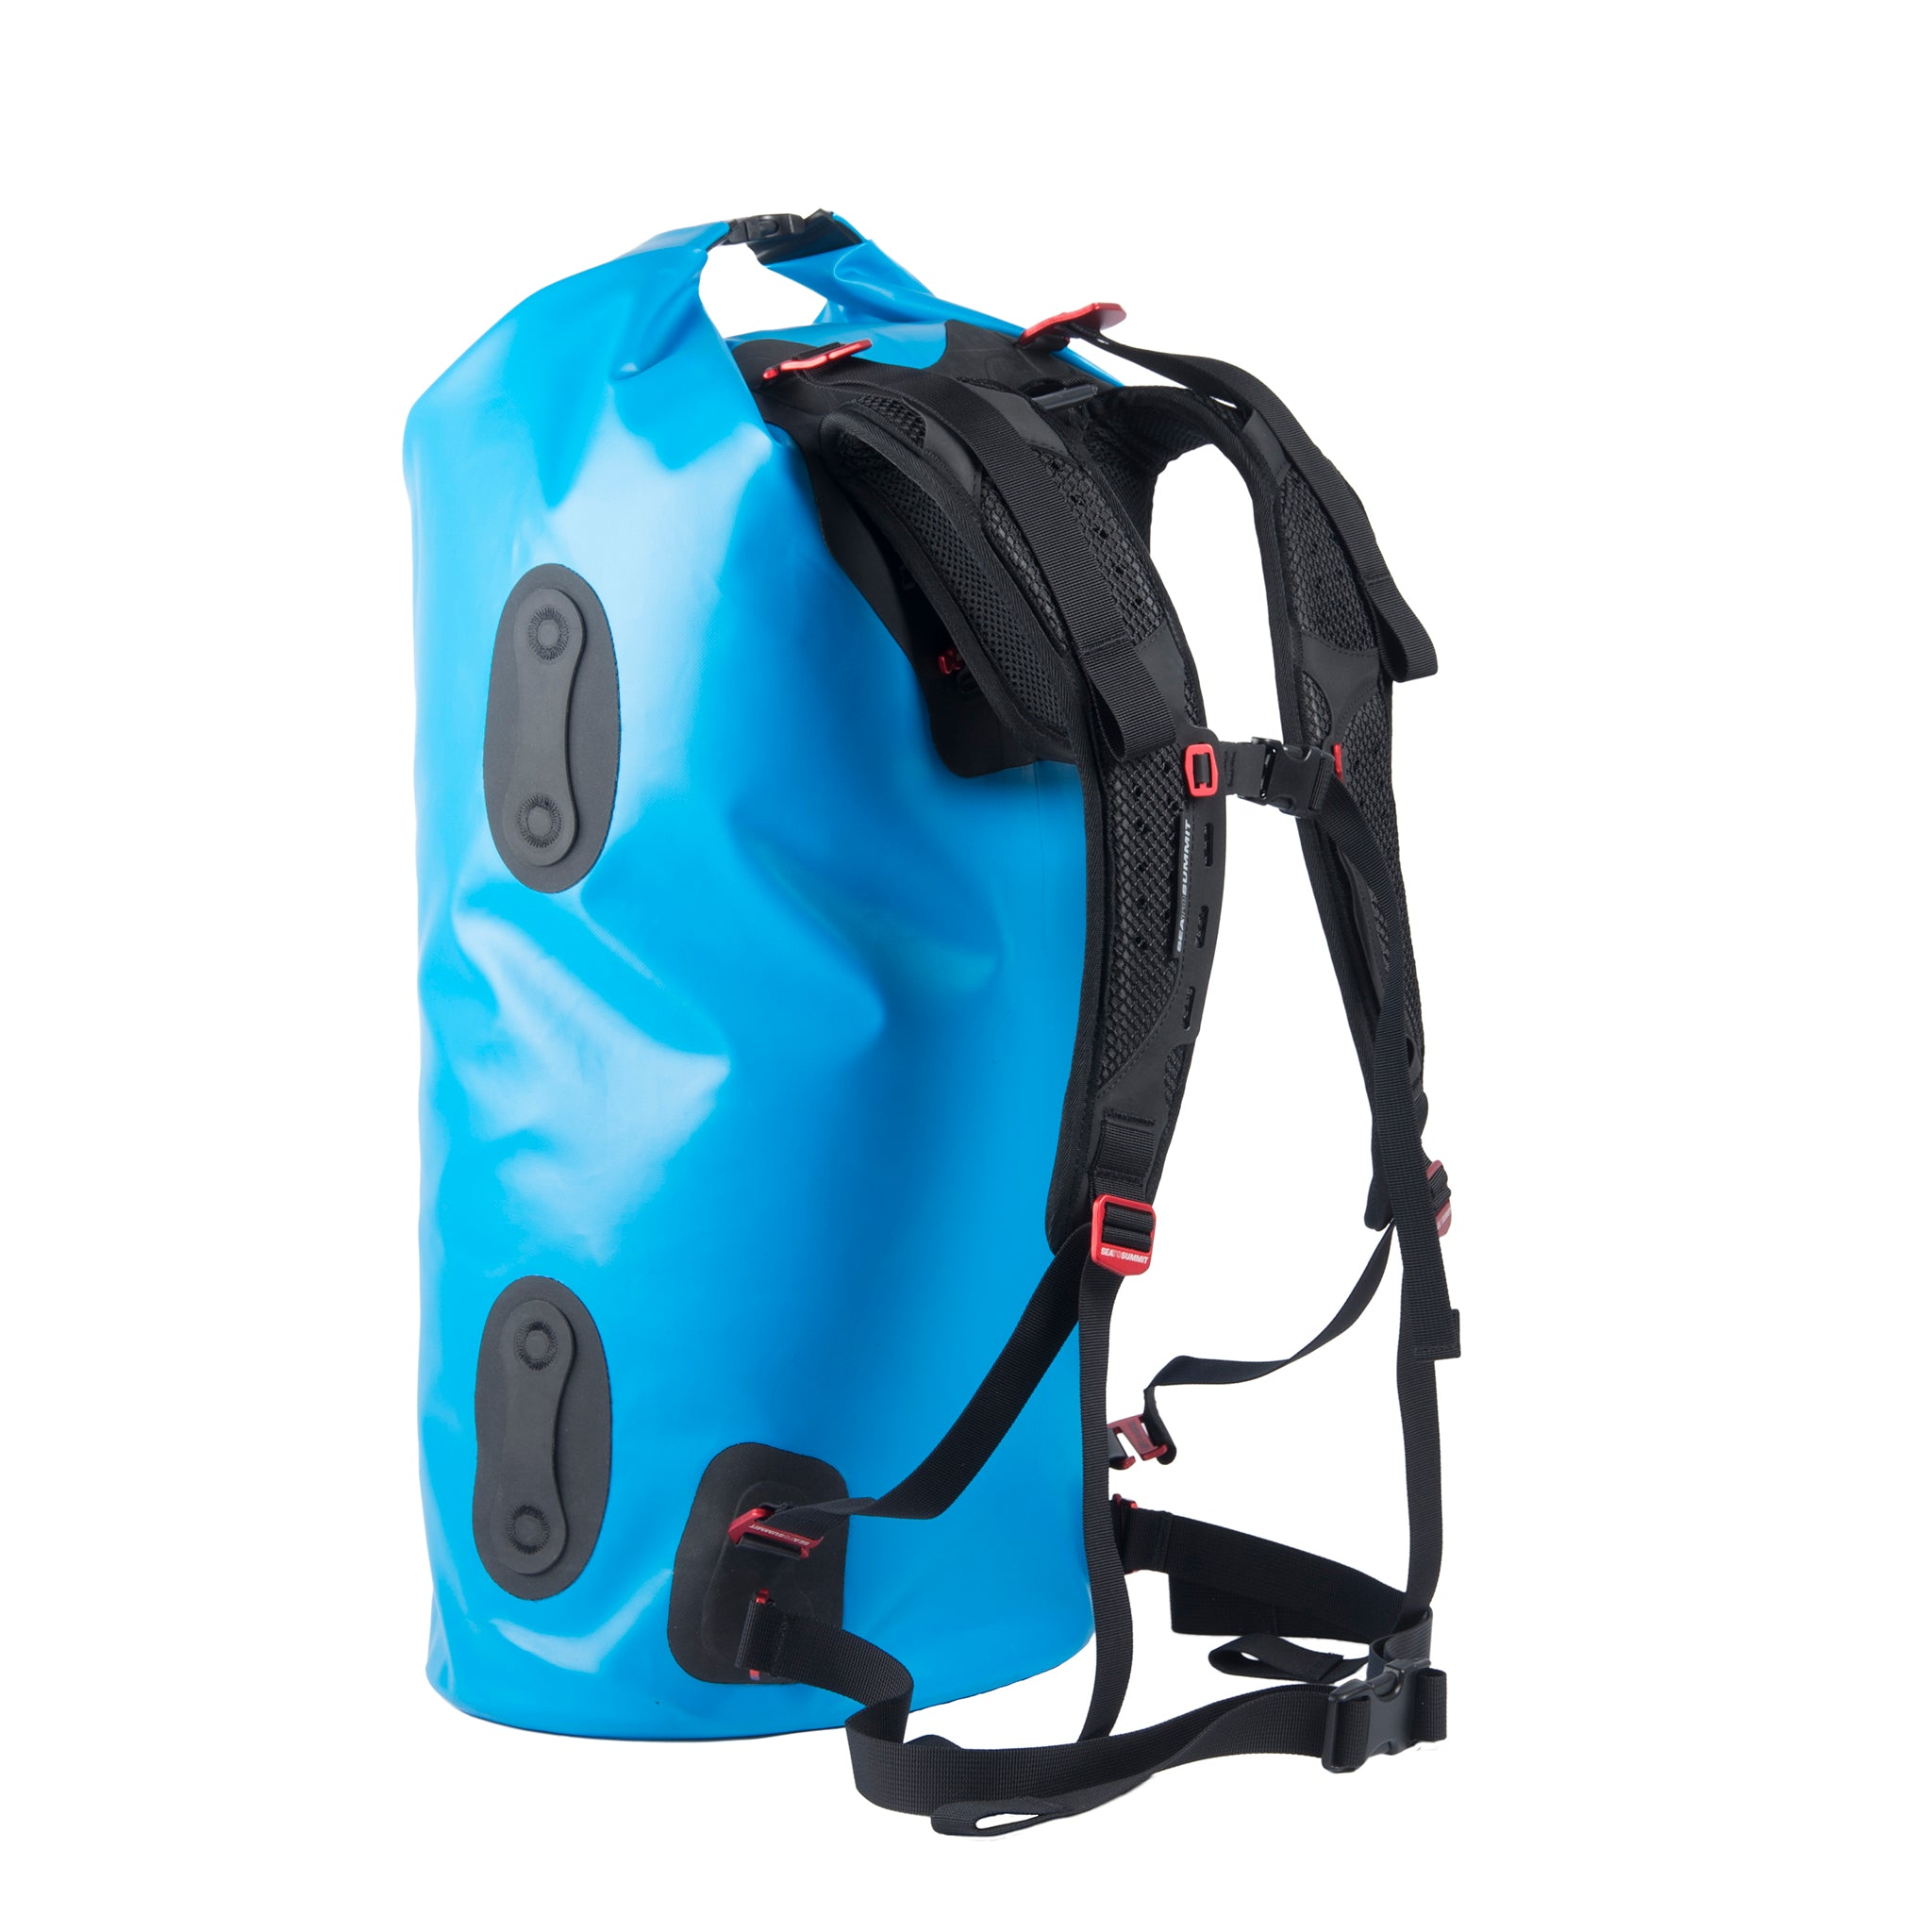 Hydraulic Dry Pack bag _ 35 liter _ blue